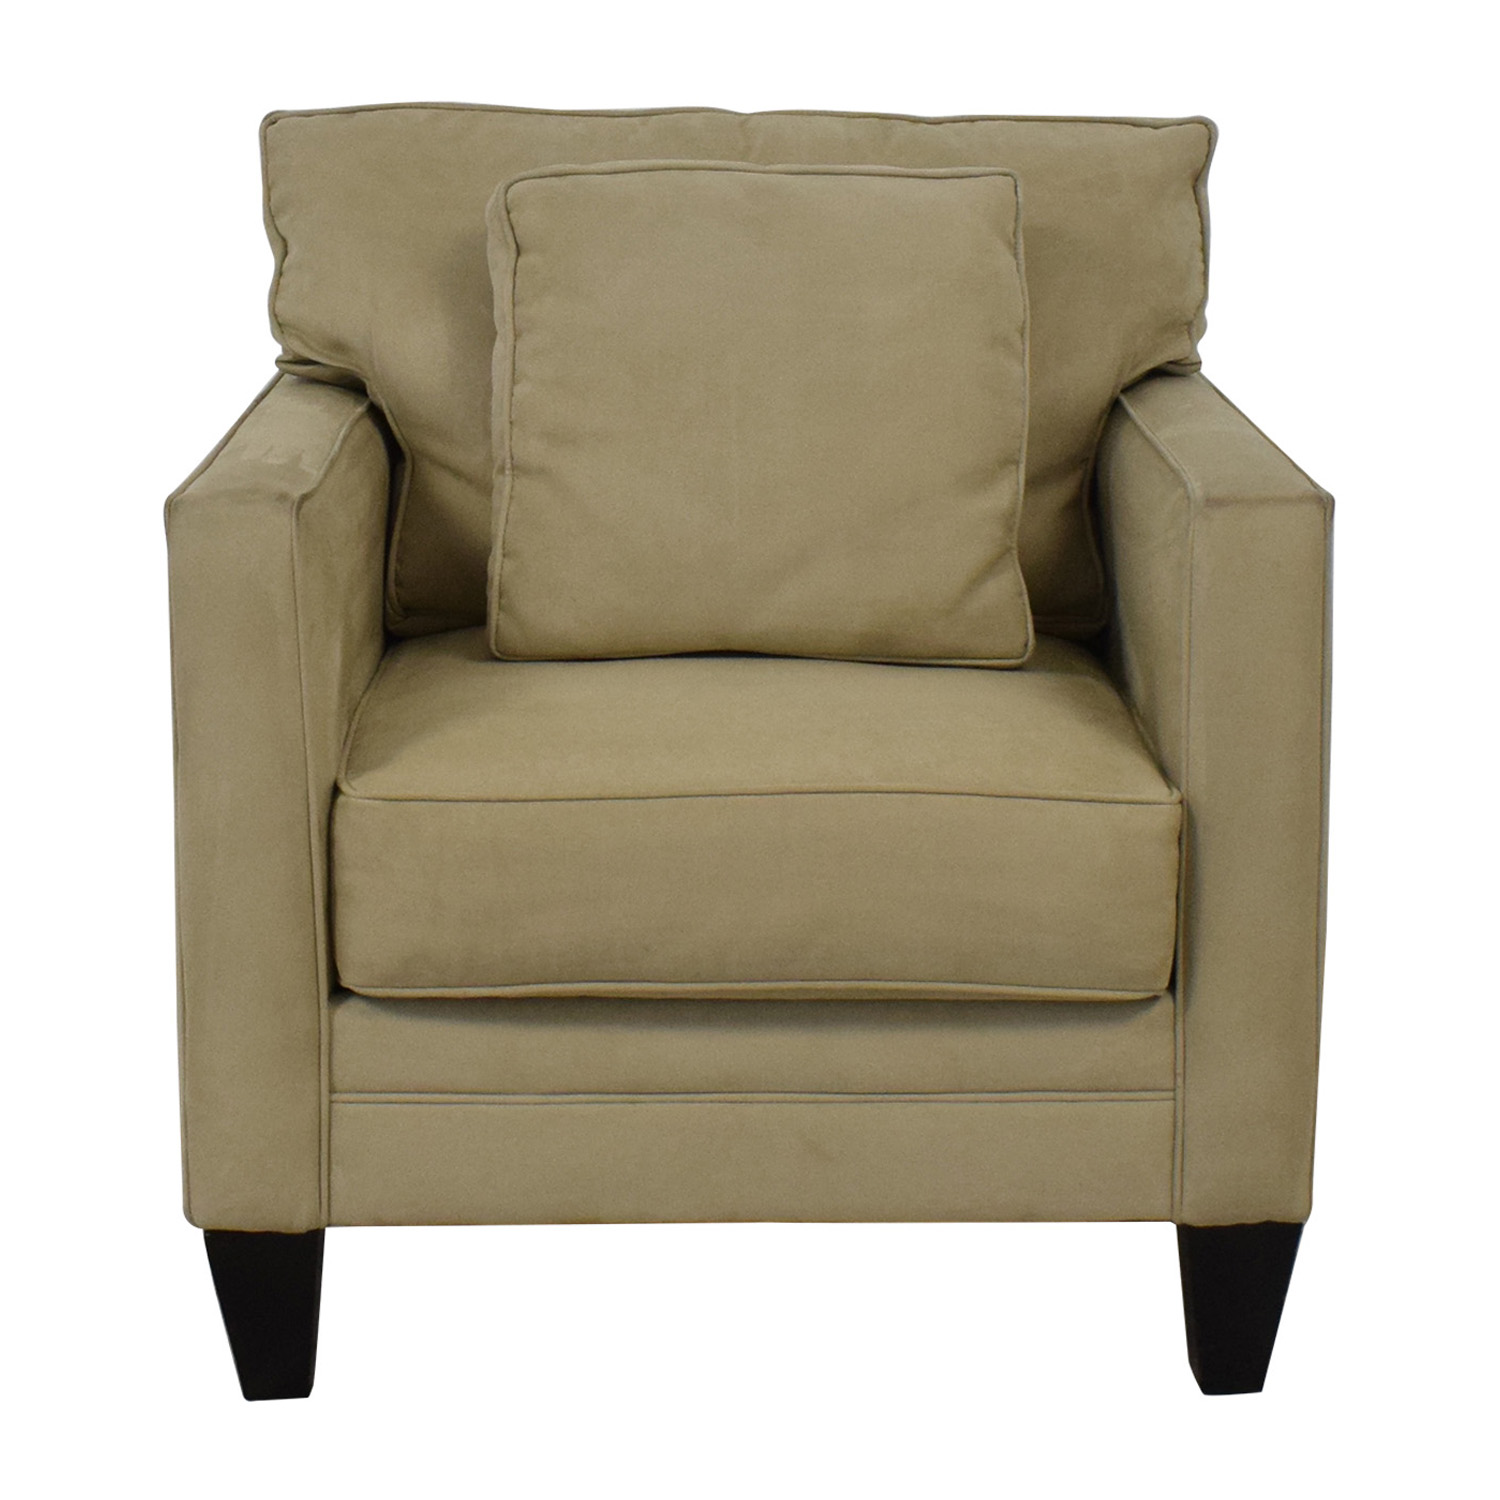 Bauhaus Furniture Bauhaus Furniture Suede Armchair discount